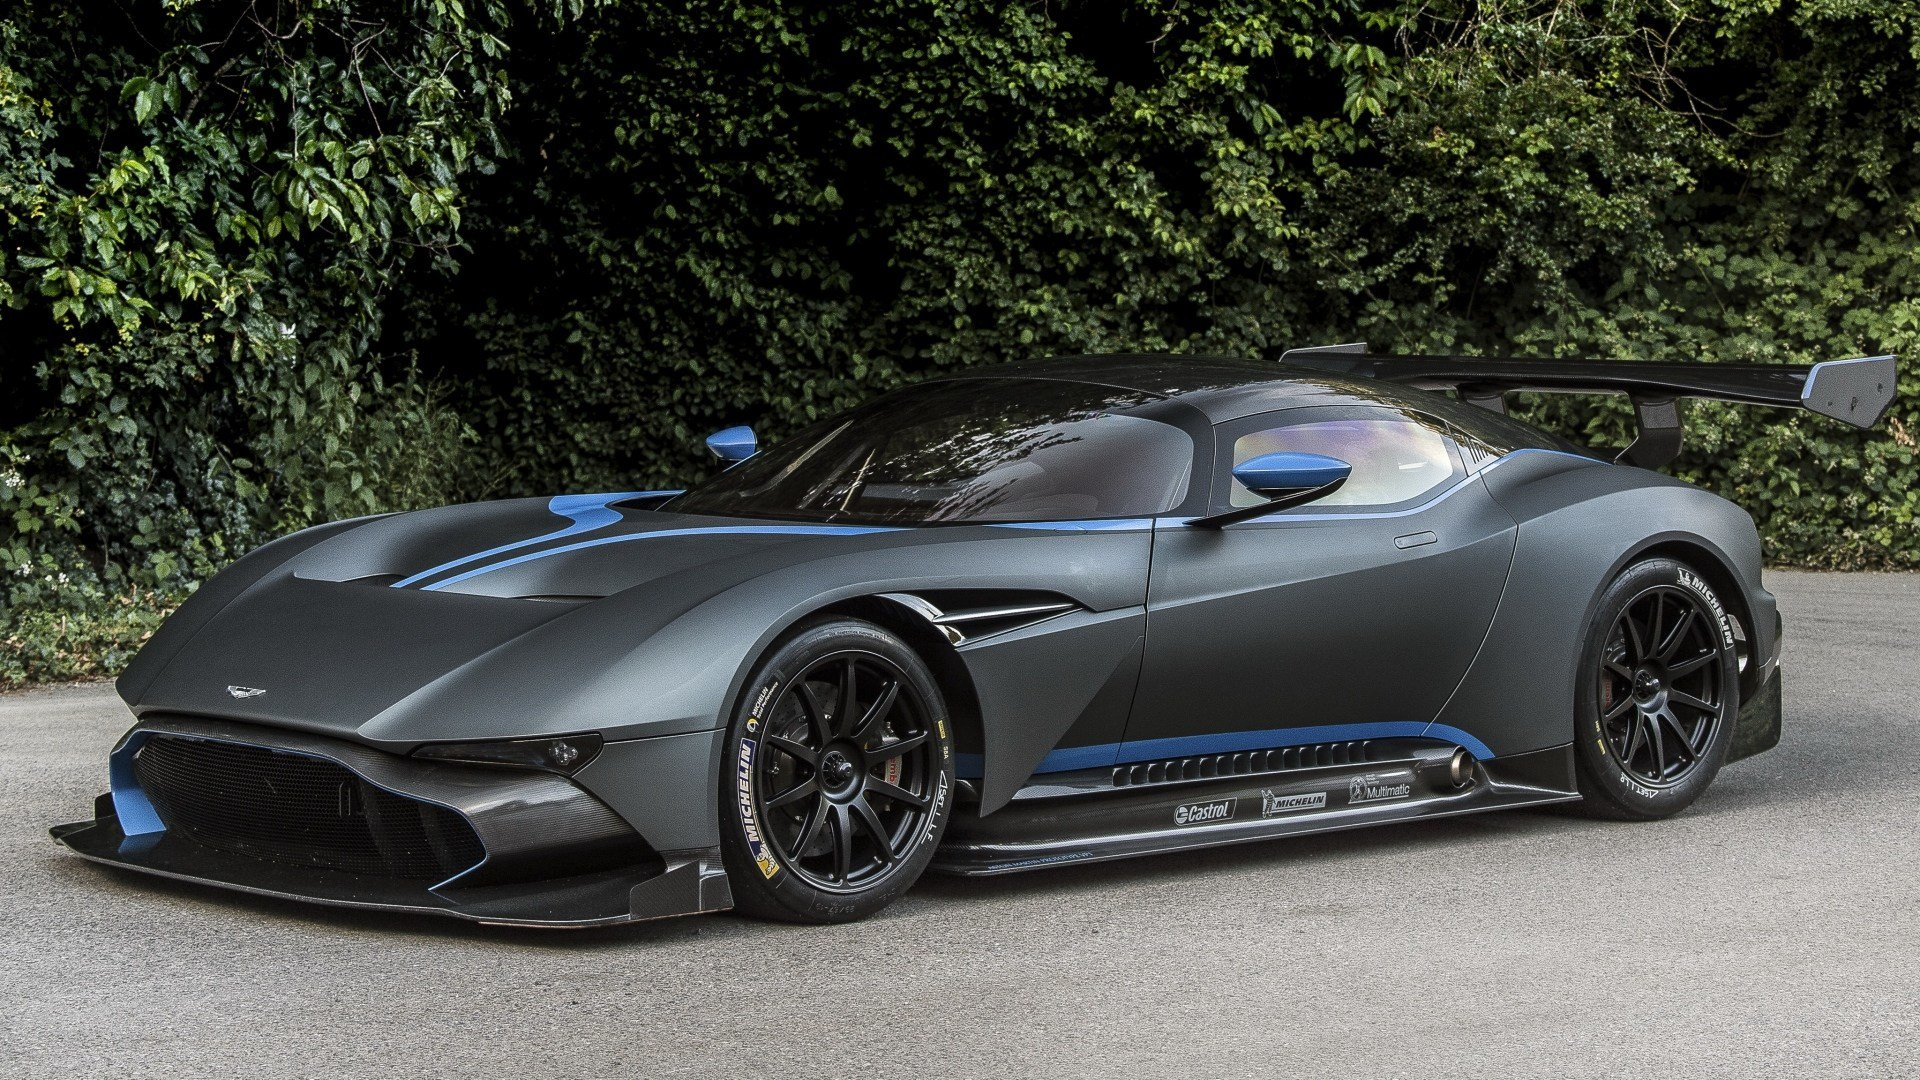 Latest Download 1920X1080 Hd Wallpaper Aston Martin Vulcan Sport Free Download